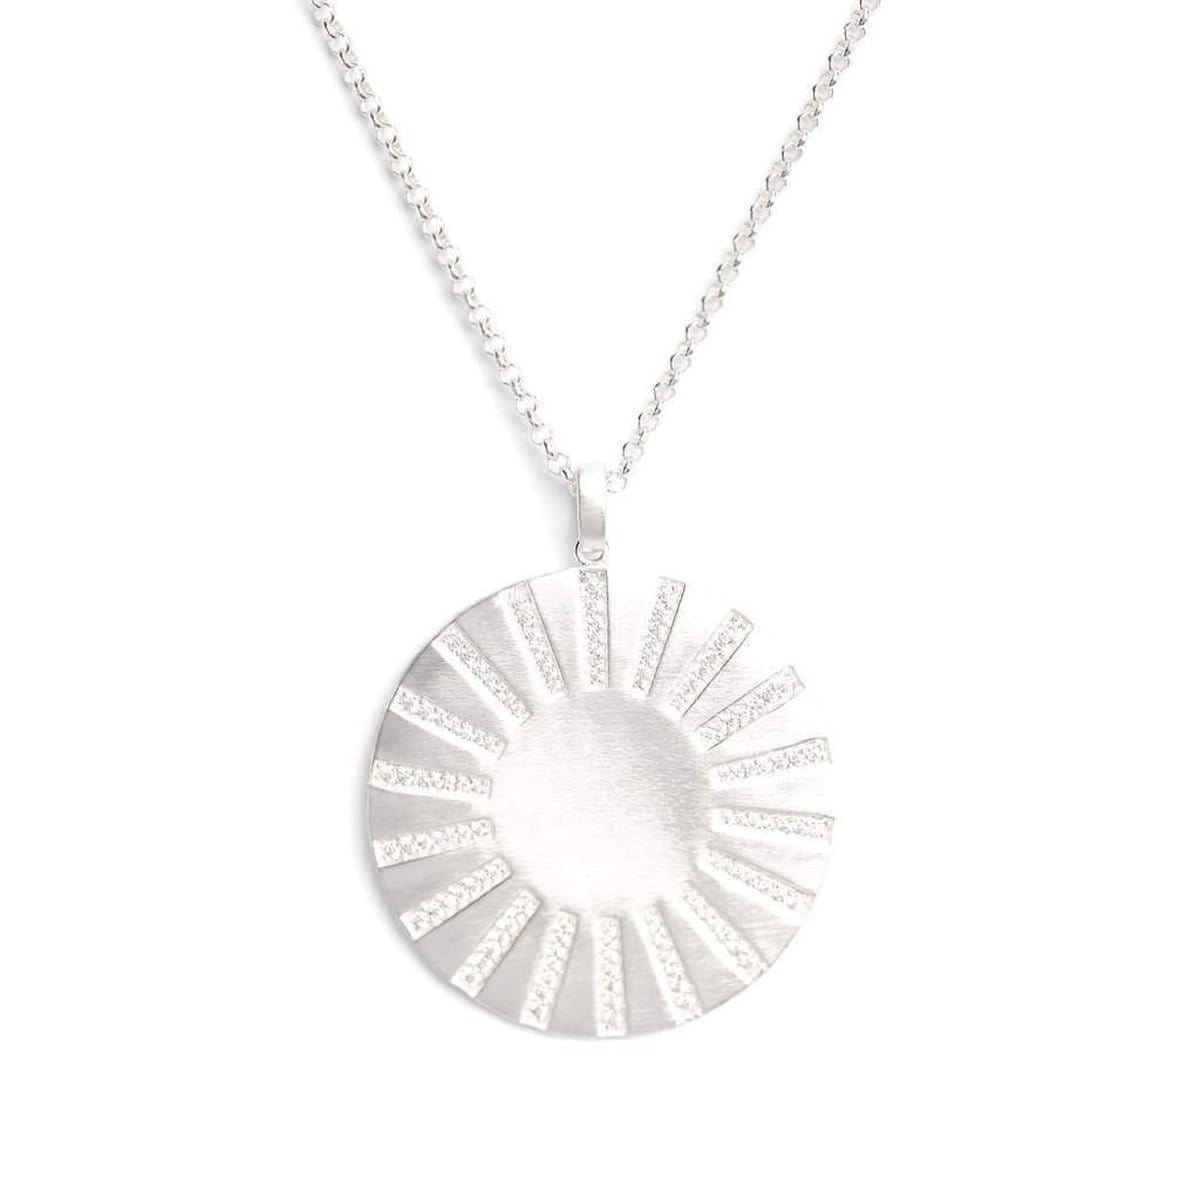 Sonne Zirconia Necklace - 85312154